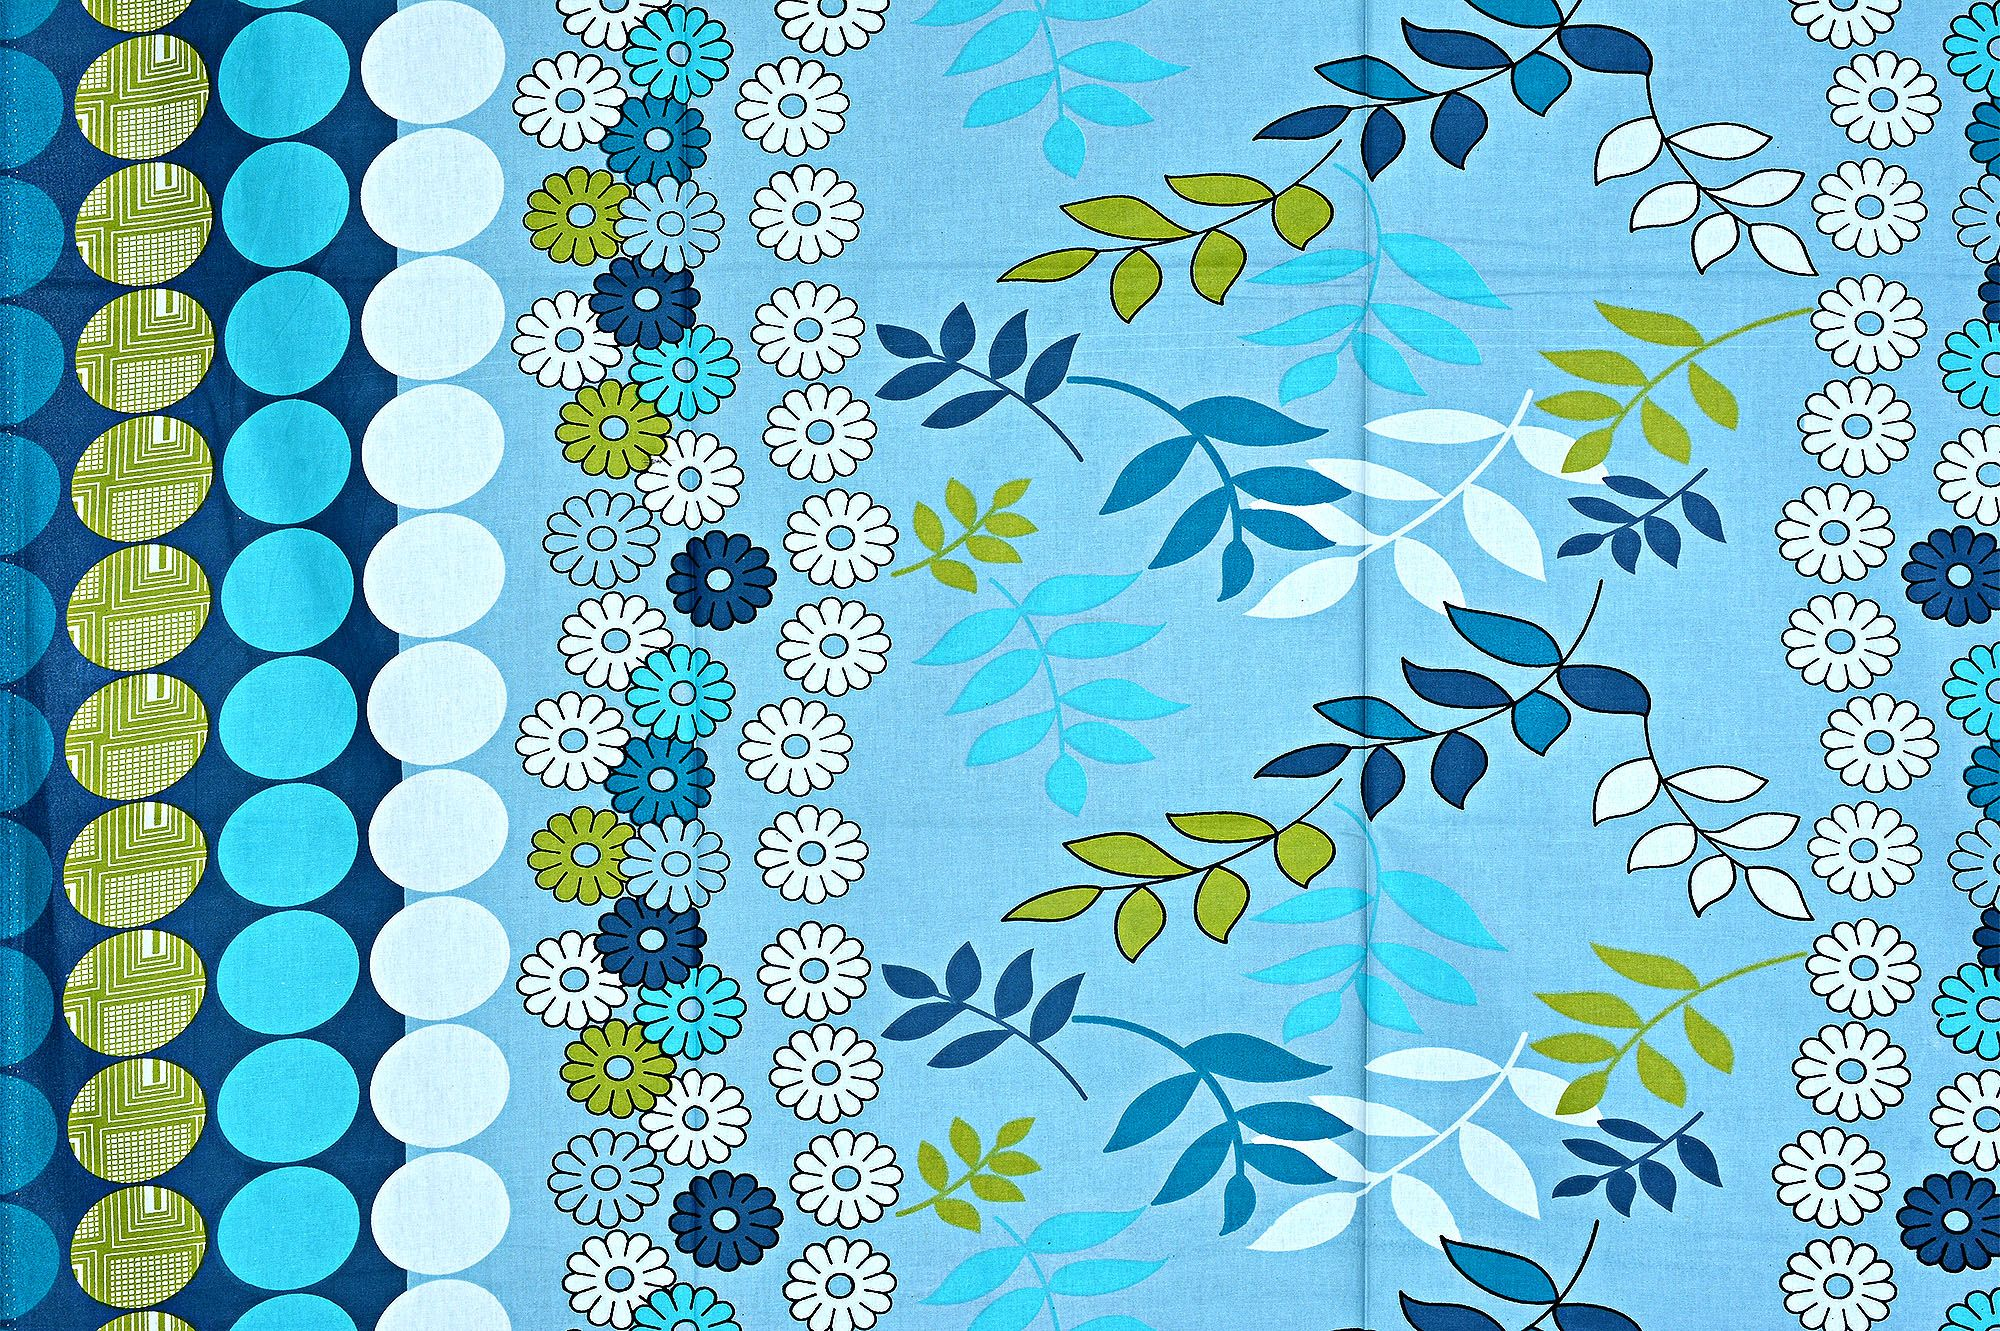 Blue Base Polka Dot Leaf And Flower Print Cotton Single Bed Sheet with 1 pillow Cover